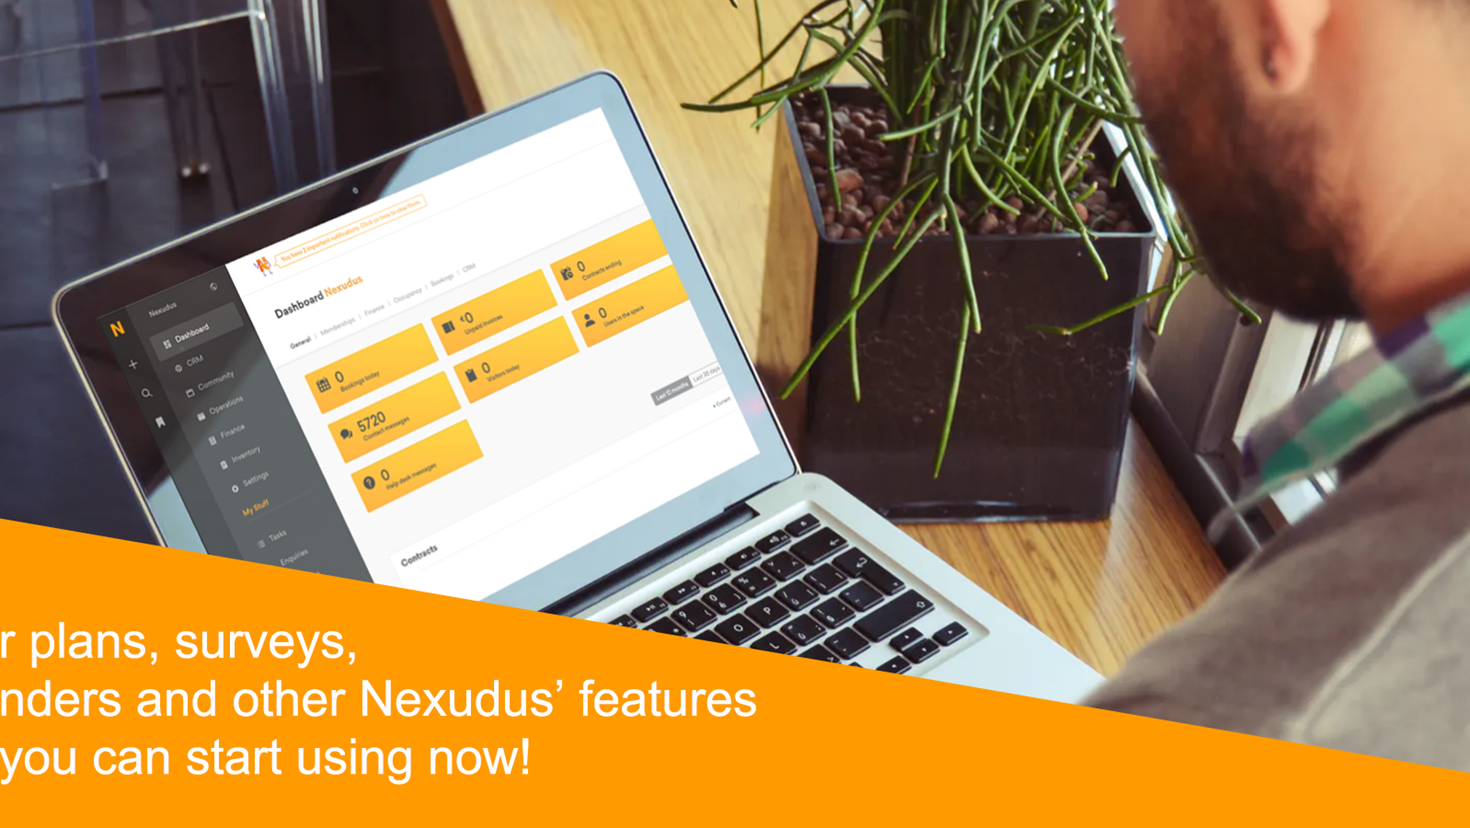 Floor plans, surveys, birthday reminders and other Nexudus' features that you can start using now!